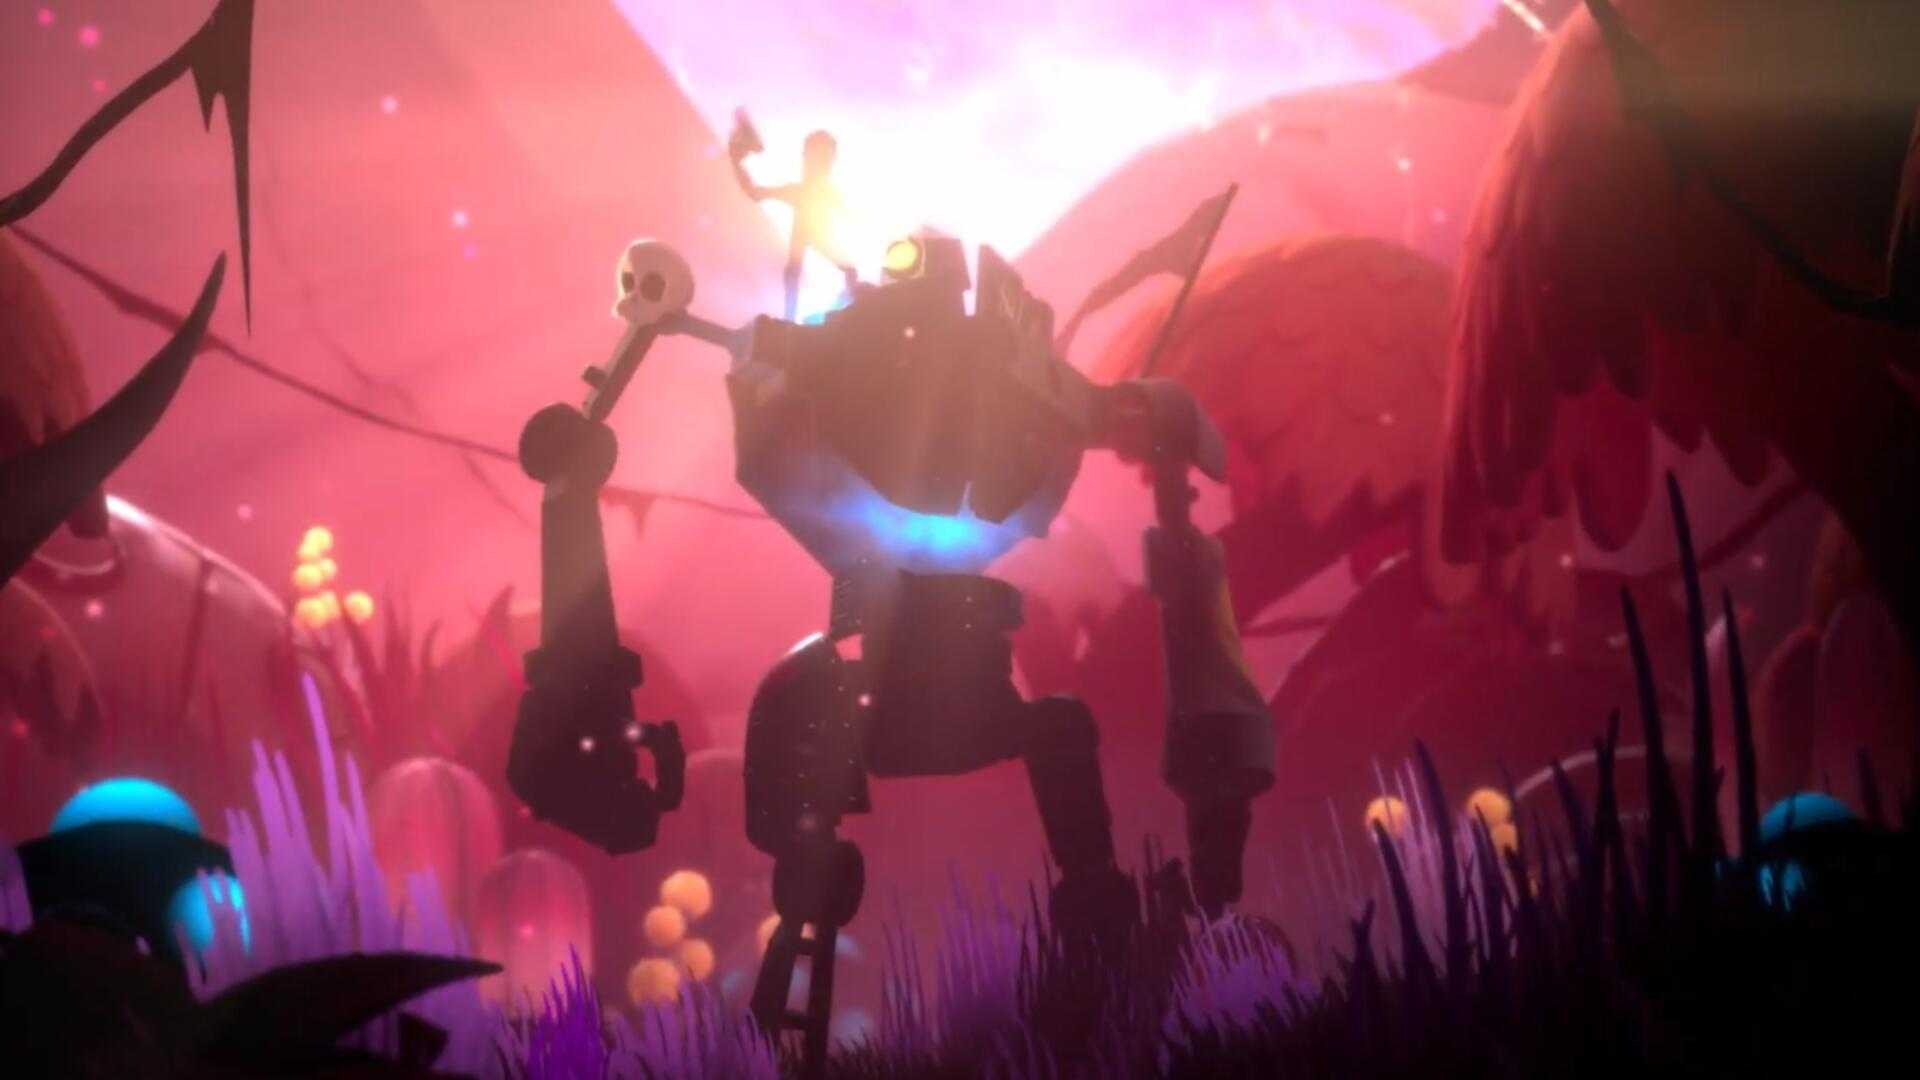 EA Announces New EA Original Rustheart, A Game About Customizing and Befriending a Big Robot